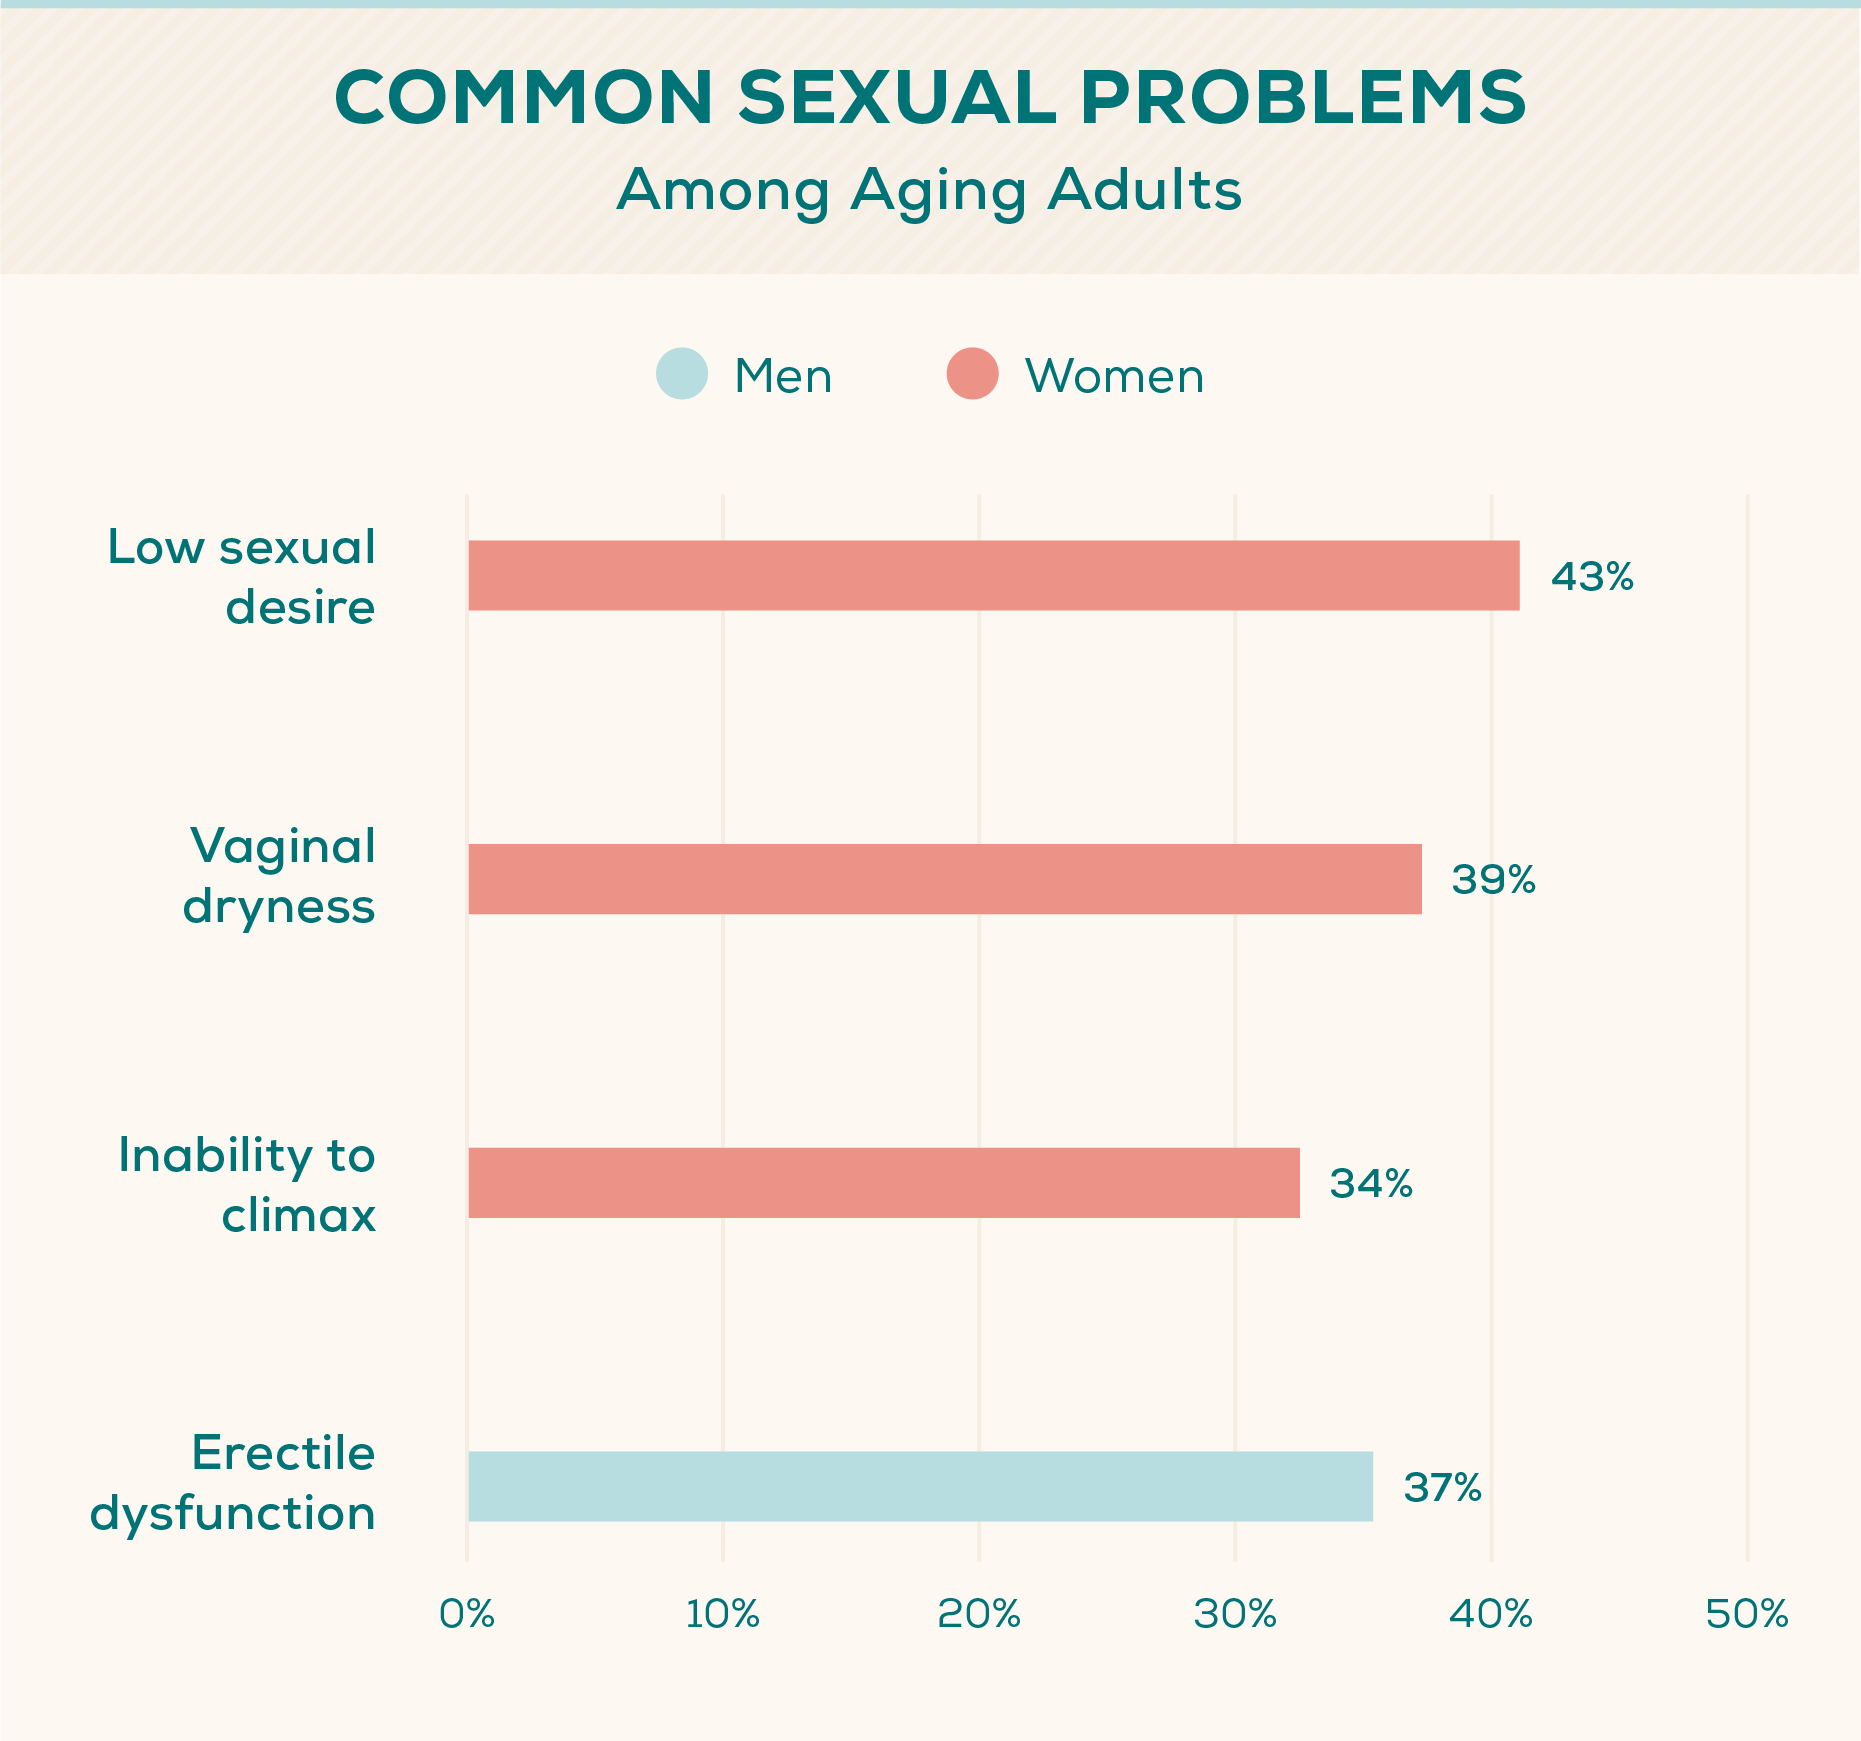 sex-and-aging-common-problems-bar-chart